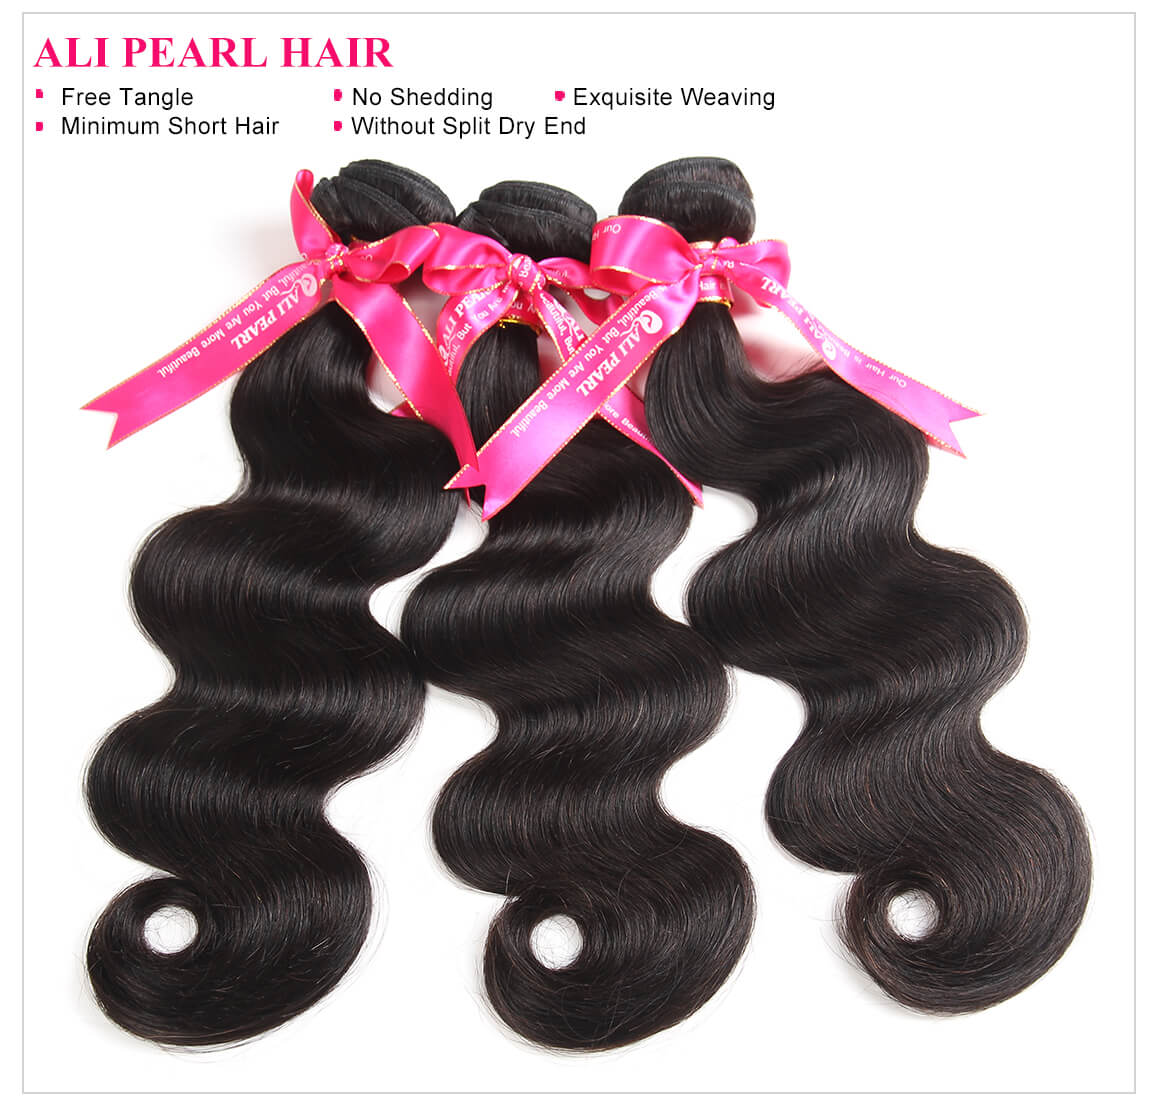 Body Wave 3 Hair Bundle